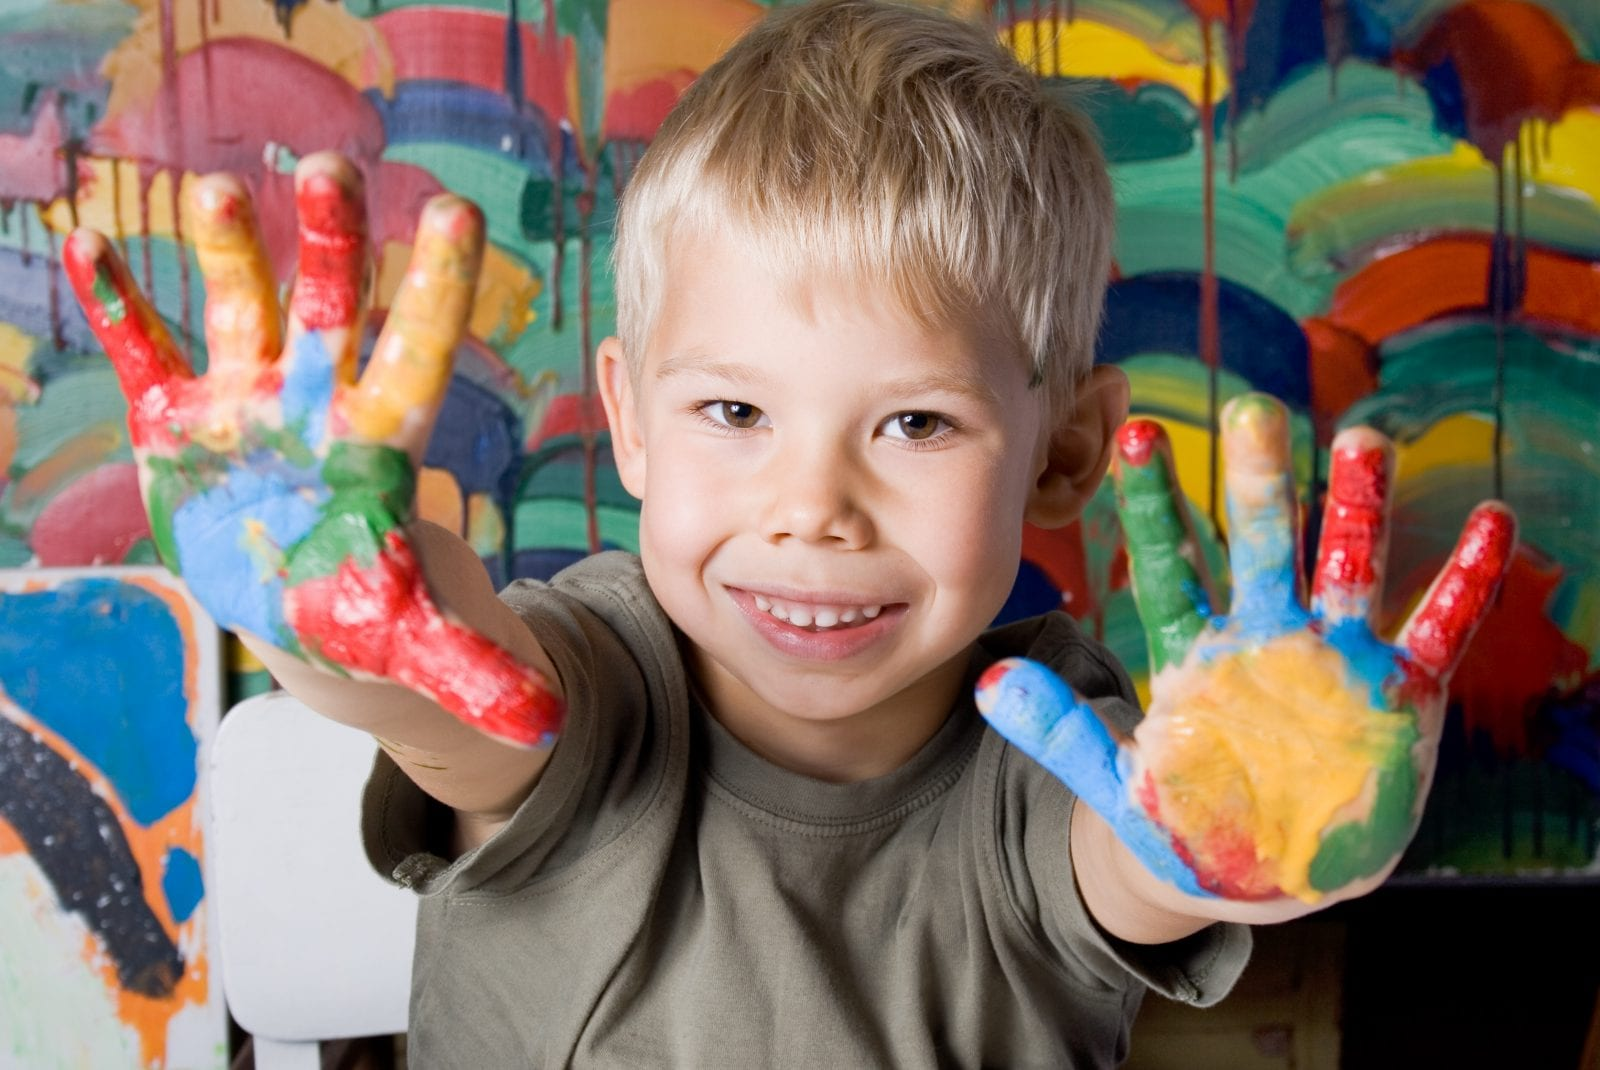 autism inside education While there is no known cure for autism, there are treatment options and education approaches that can address some of the challenges associated with the condition.